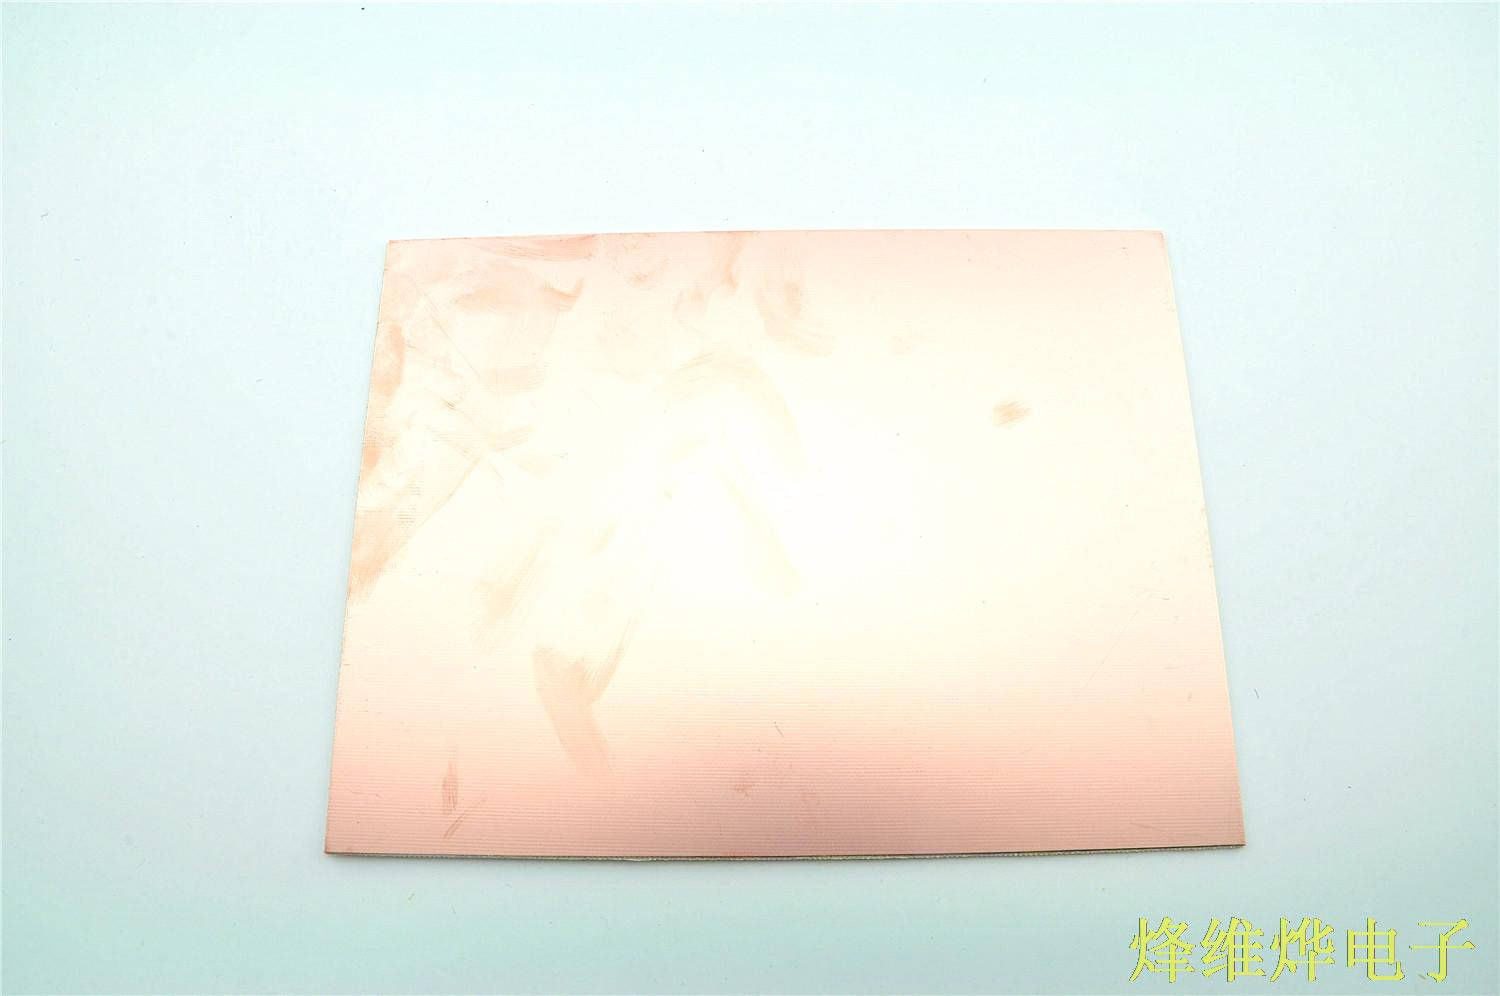 Double sided copper clad laminate 15*20CM experimental board glass fiber material thickness 1.6MM(China (Mainland))